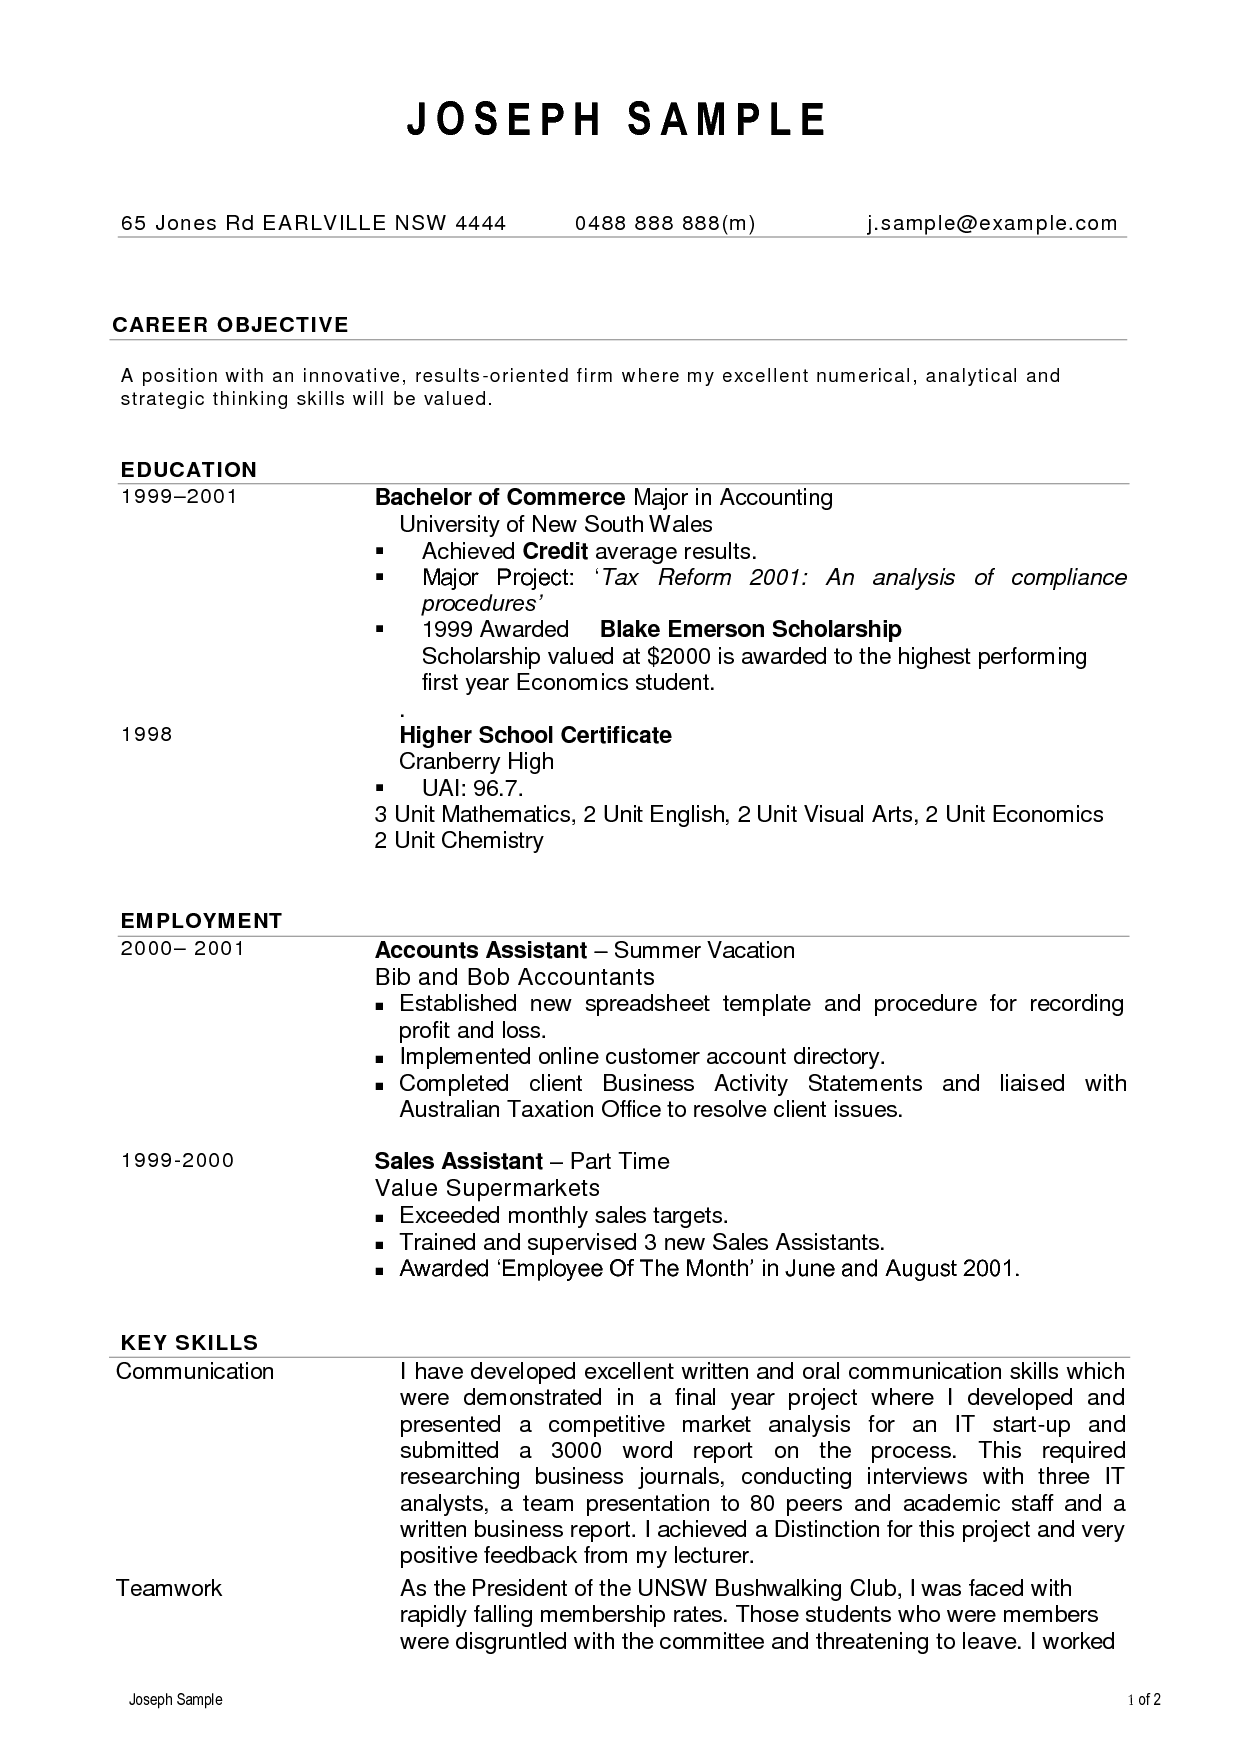 example resume for accounting student resumes template example resume for accounting student resumes